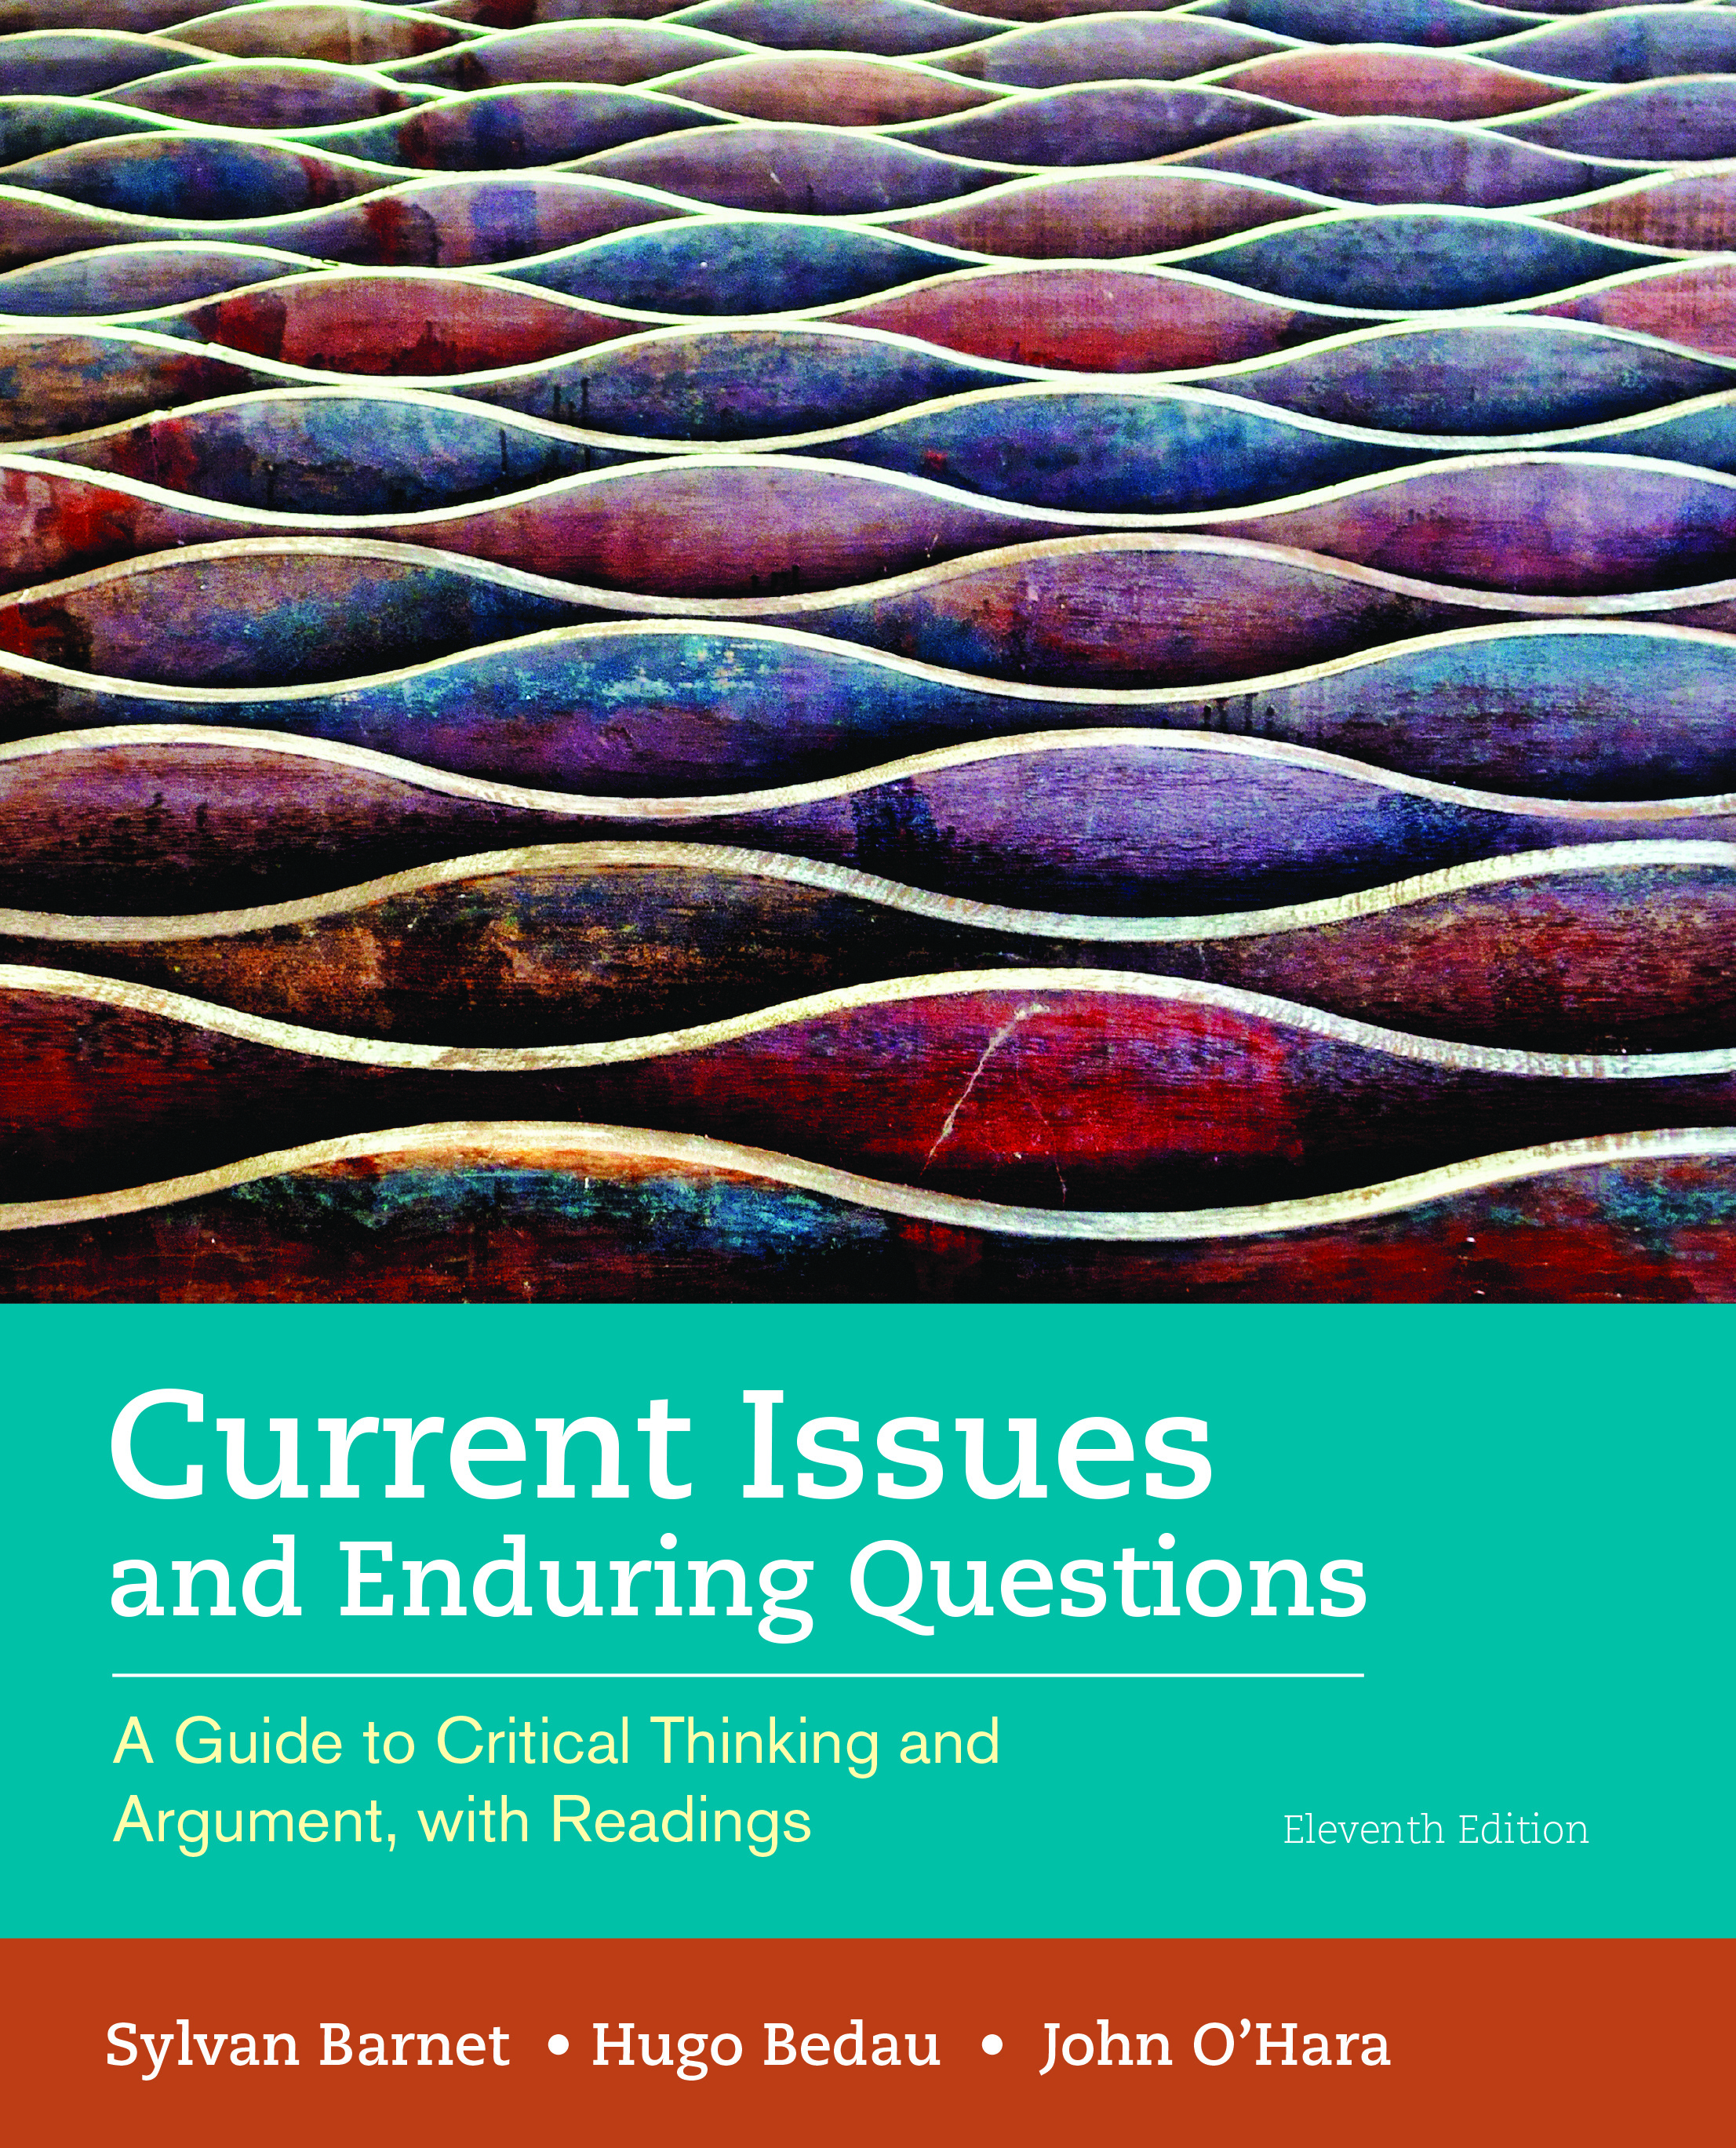 Current issues and enduring questions 10th edition pdf dolap current fandeluxe Choice Image